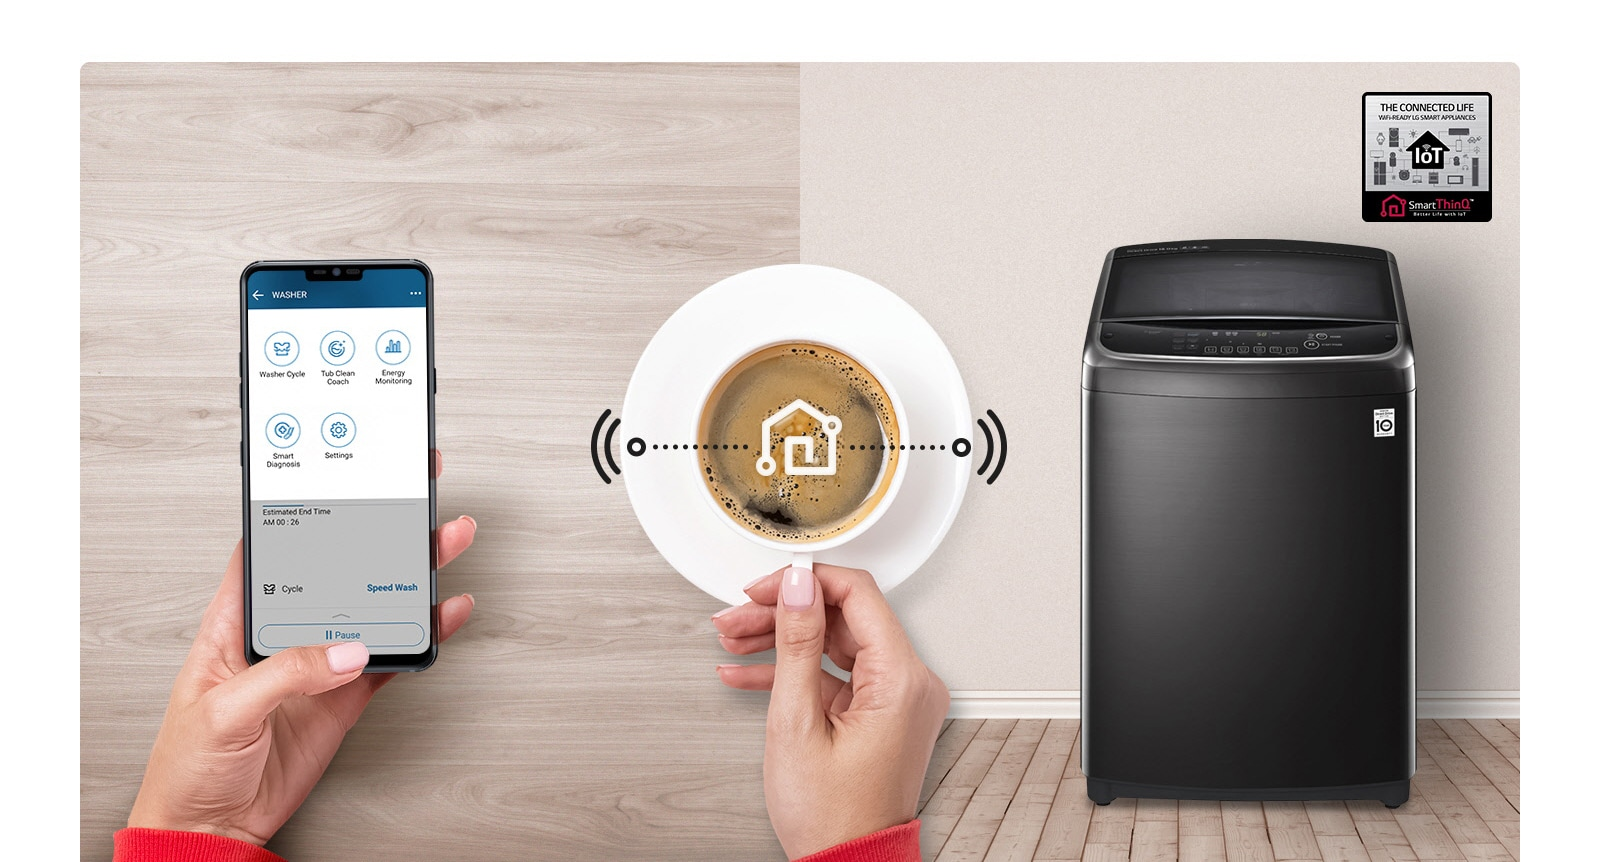 Smart Laundry with Wi-Fi3